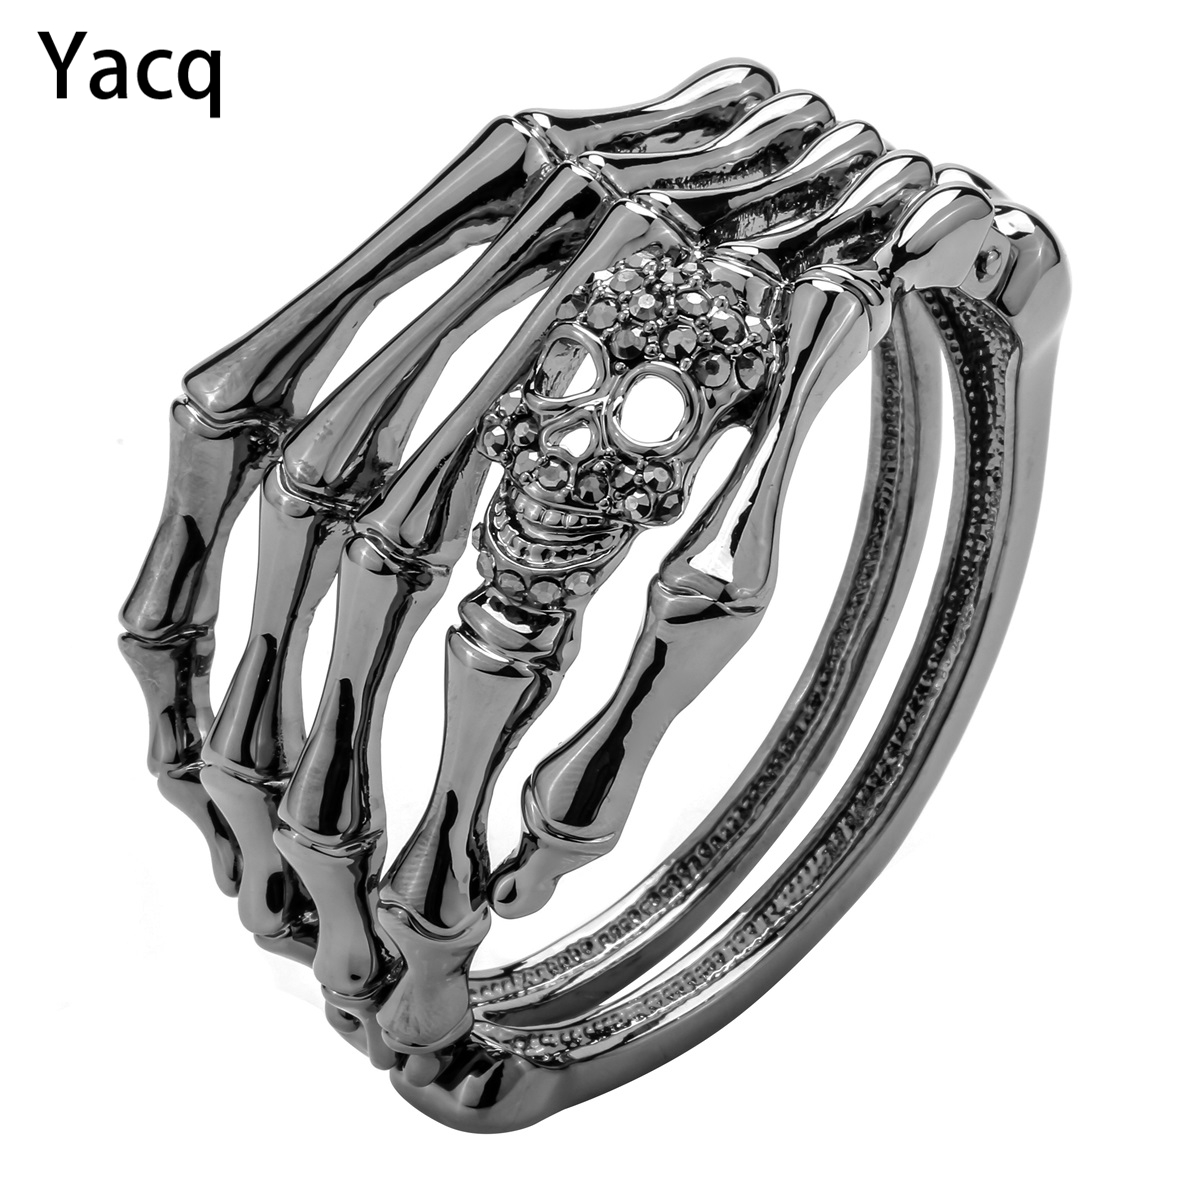 YACQ Skullon Skeleton ruka narukvica Bangle Biker Gothic Nakit Pokloni Žene Njezina djevojka Antique Silver Color D08 Dropshipping